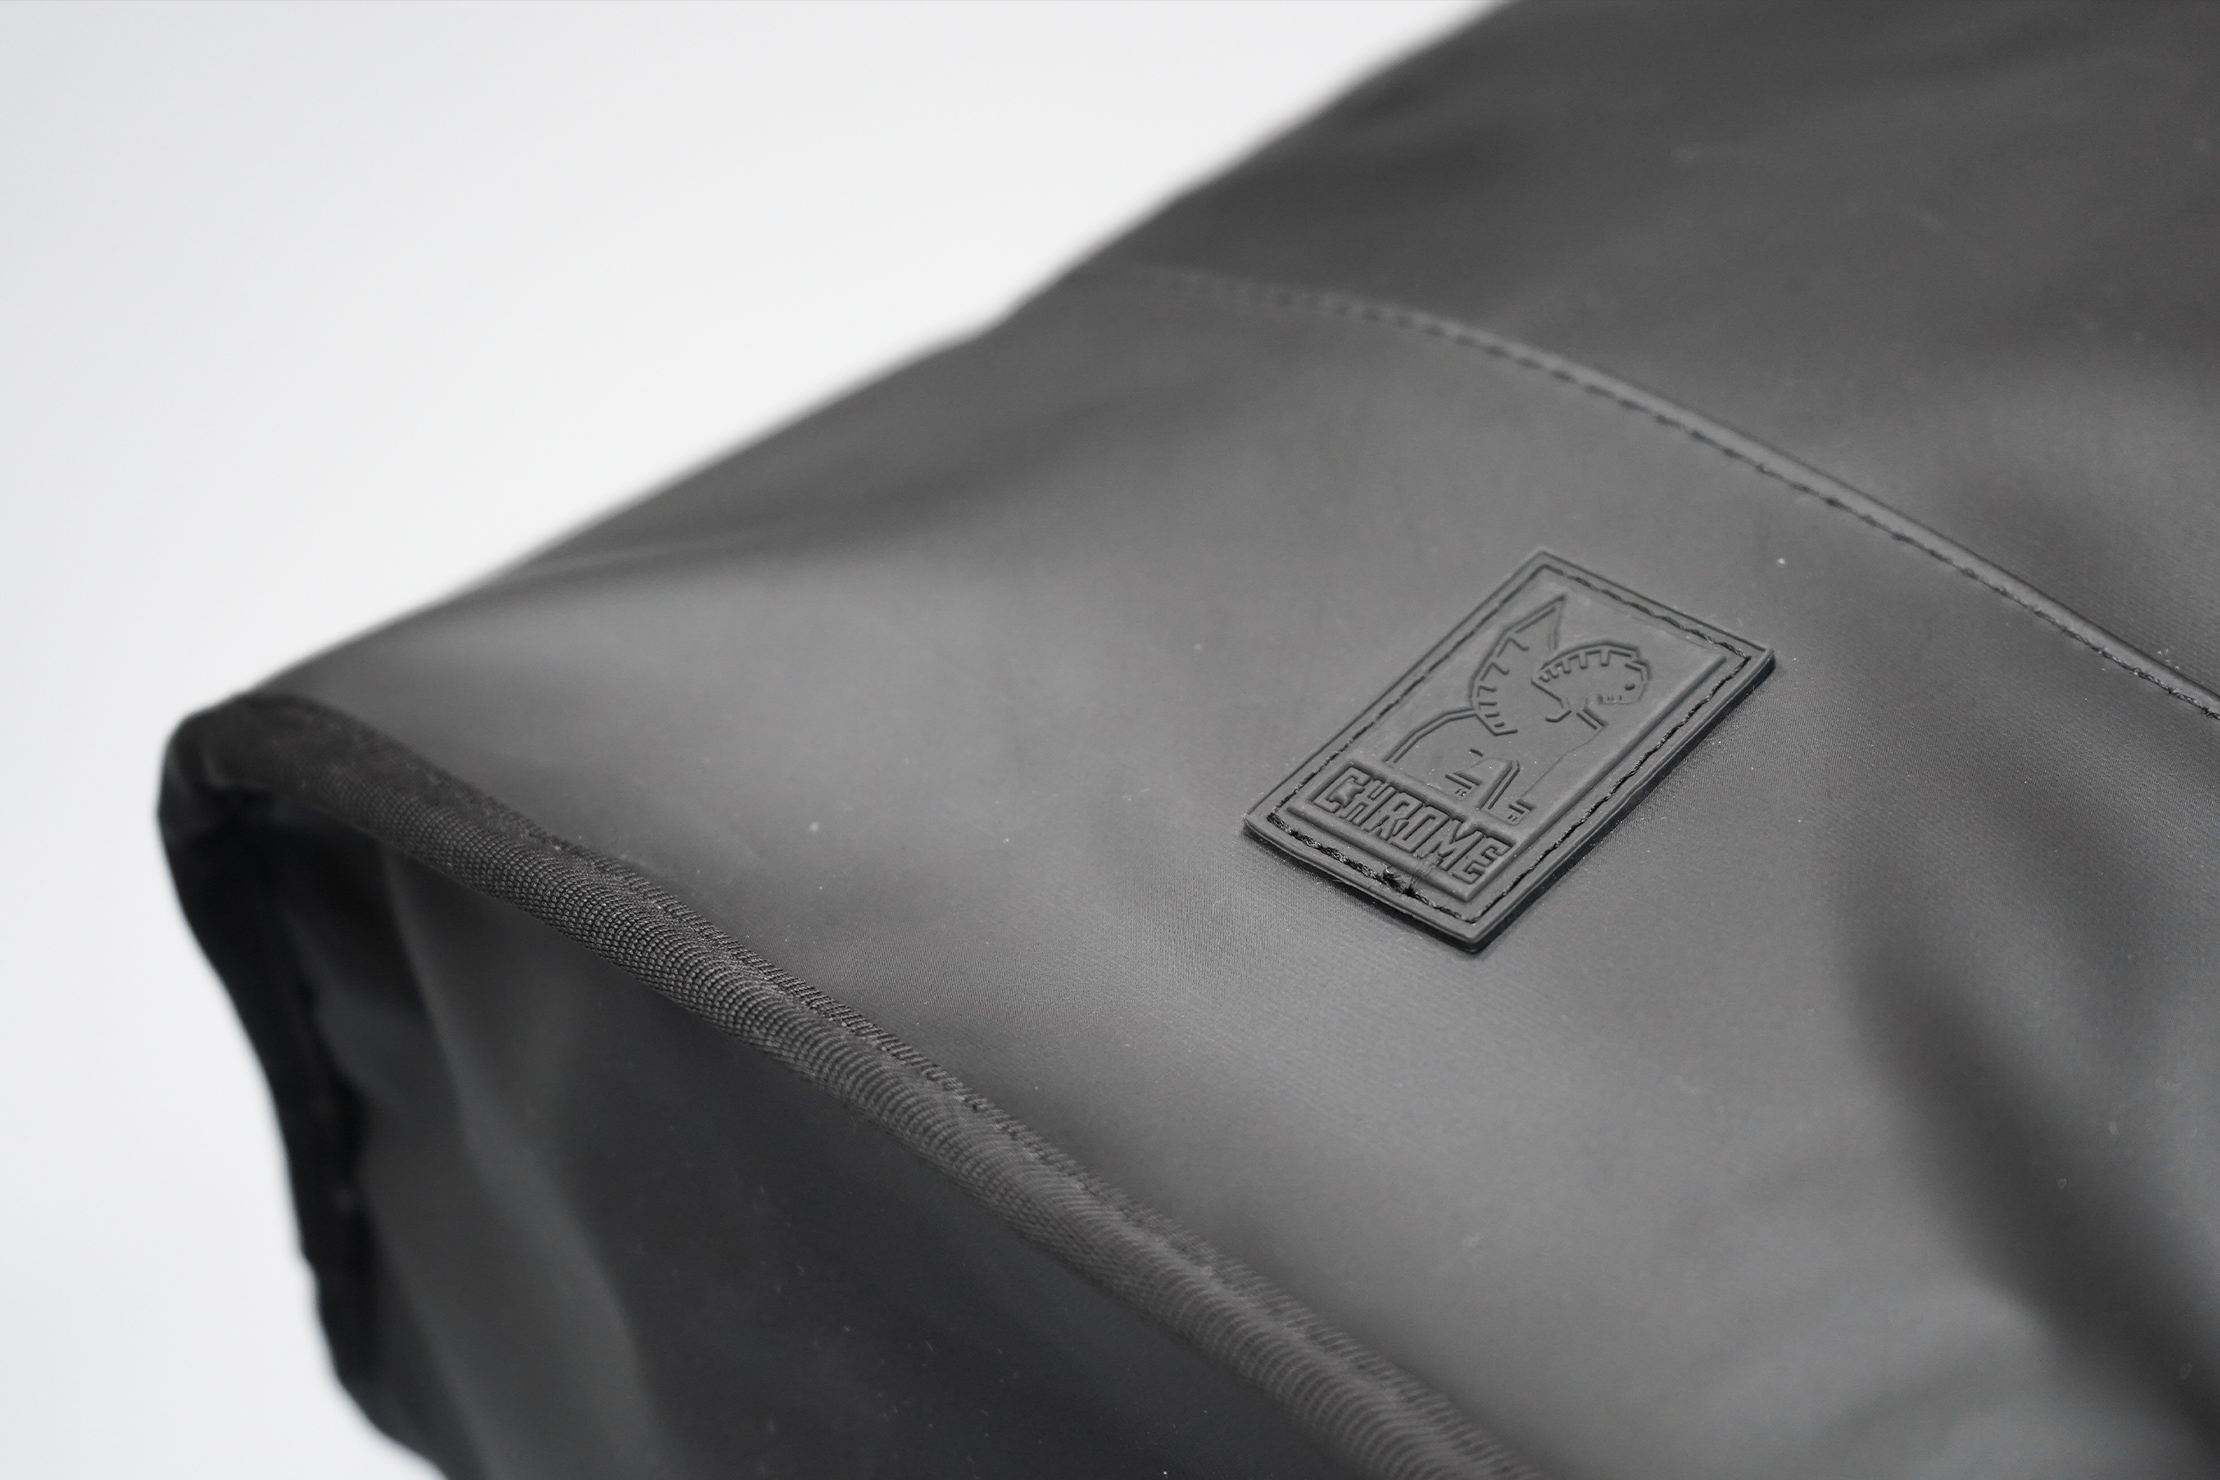 Chrome Industries Hondo Backpack Material and Logo